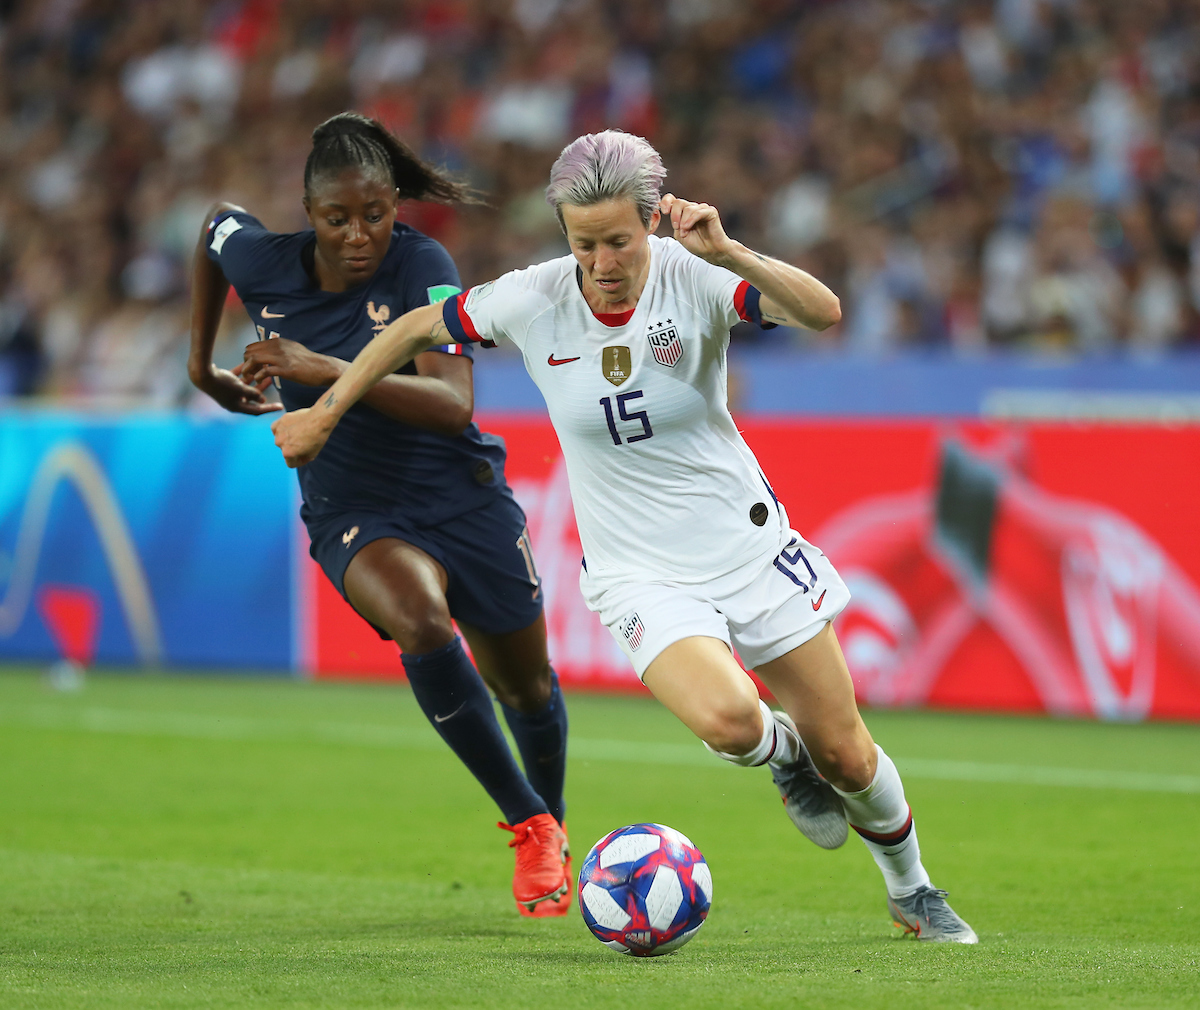 Kadidiatou Diani of France Women and Megan Rapinoe of USA Women during the 2019 FIFA Women's World Cup match at Parc des Princes, Paris Picture by Kunjan Malde/Focus Images Ltd +447523653989 28/06/2019